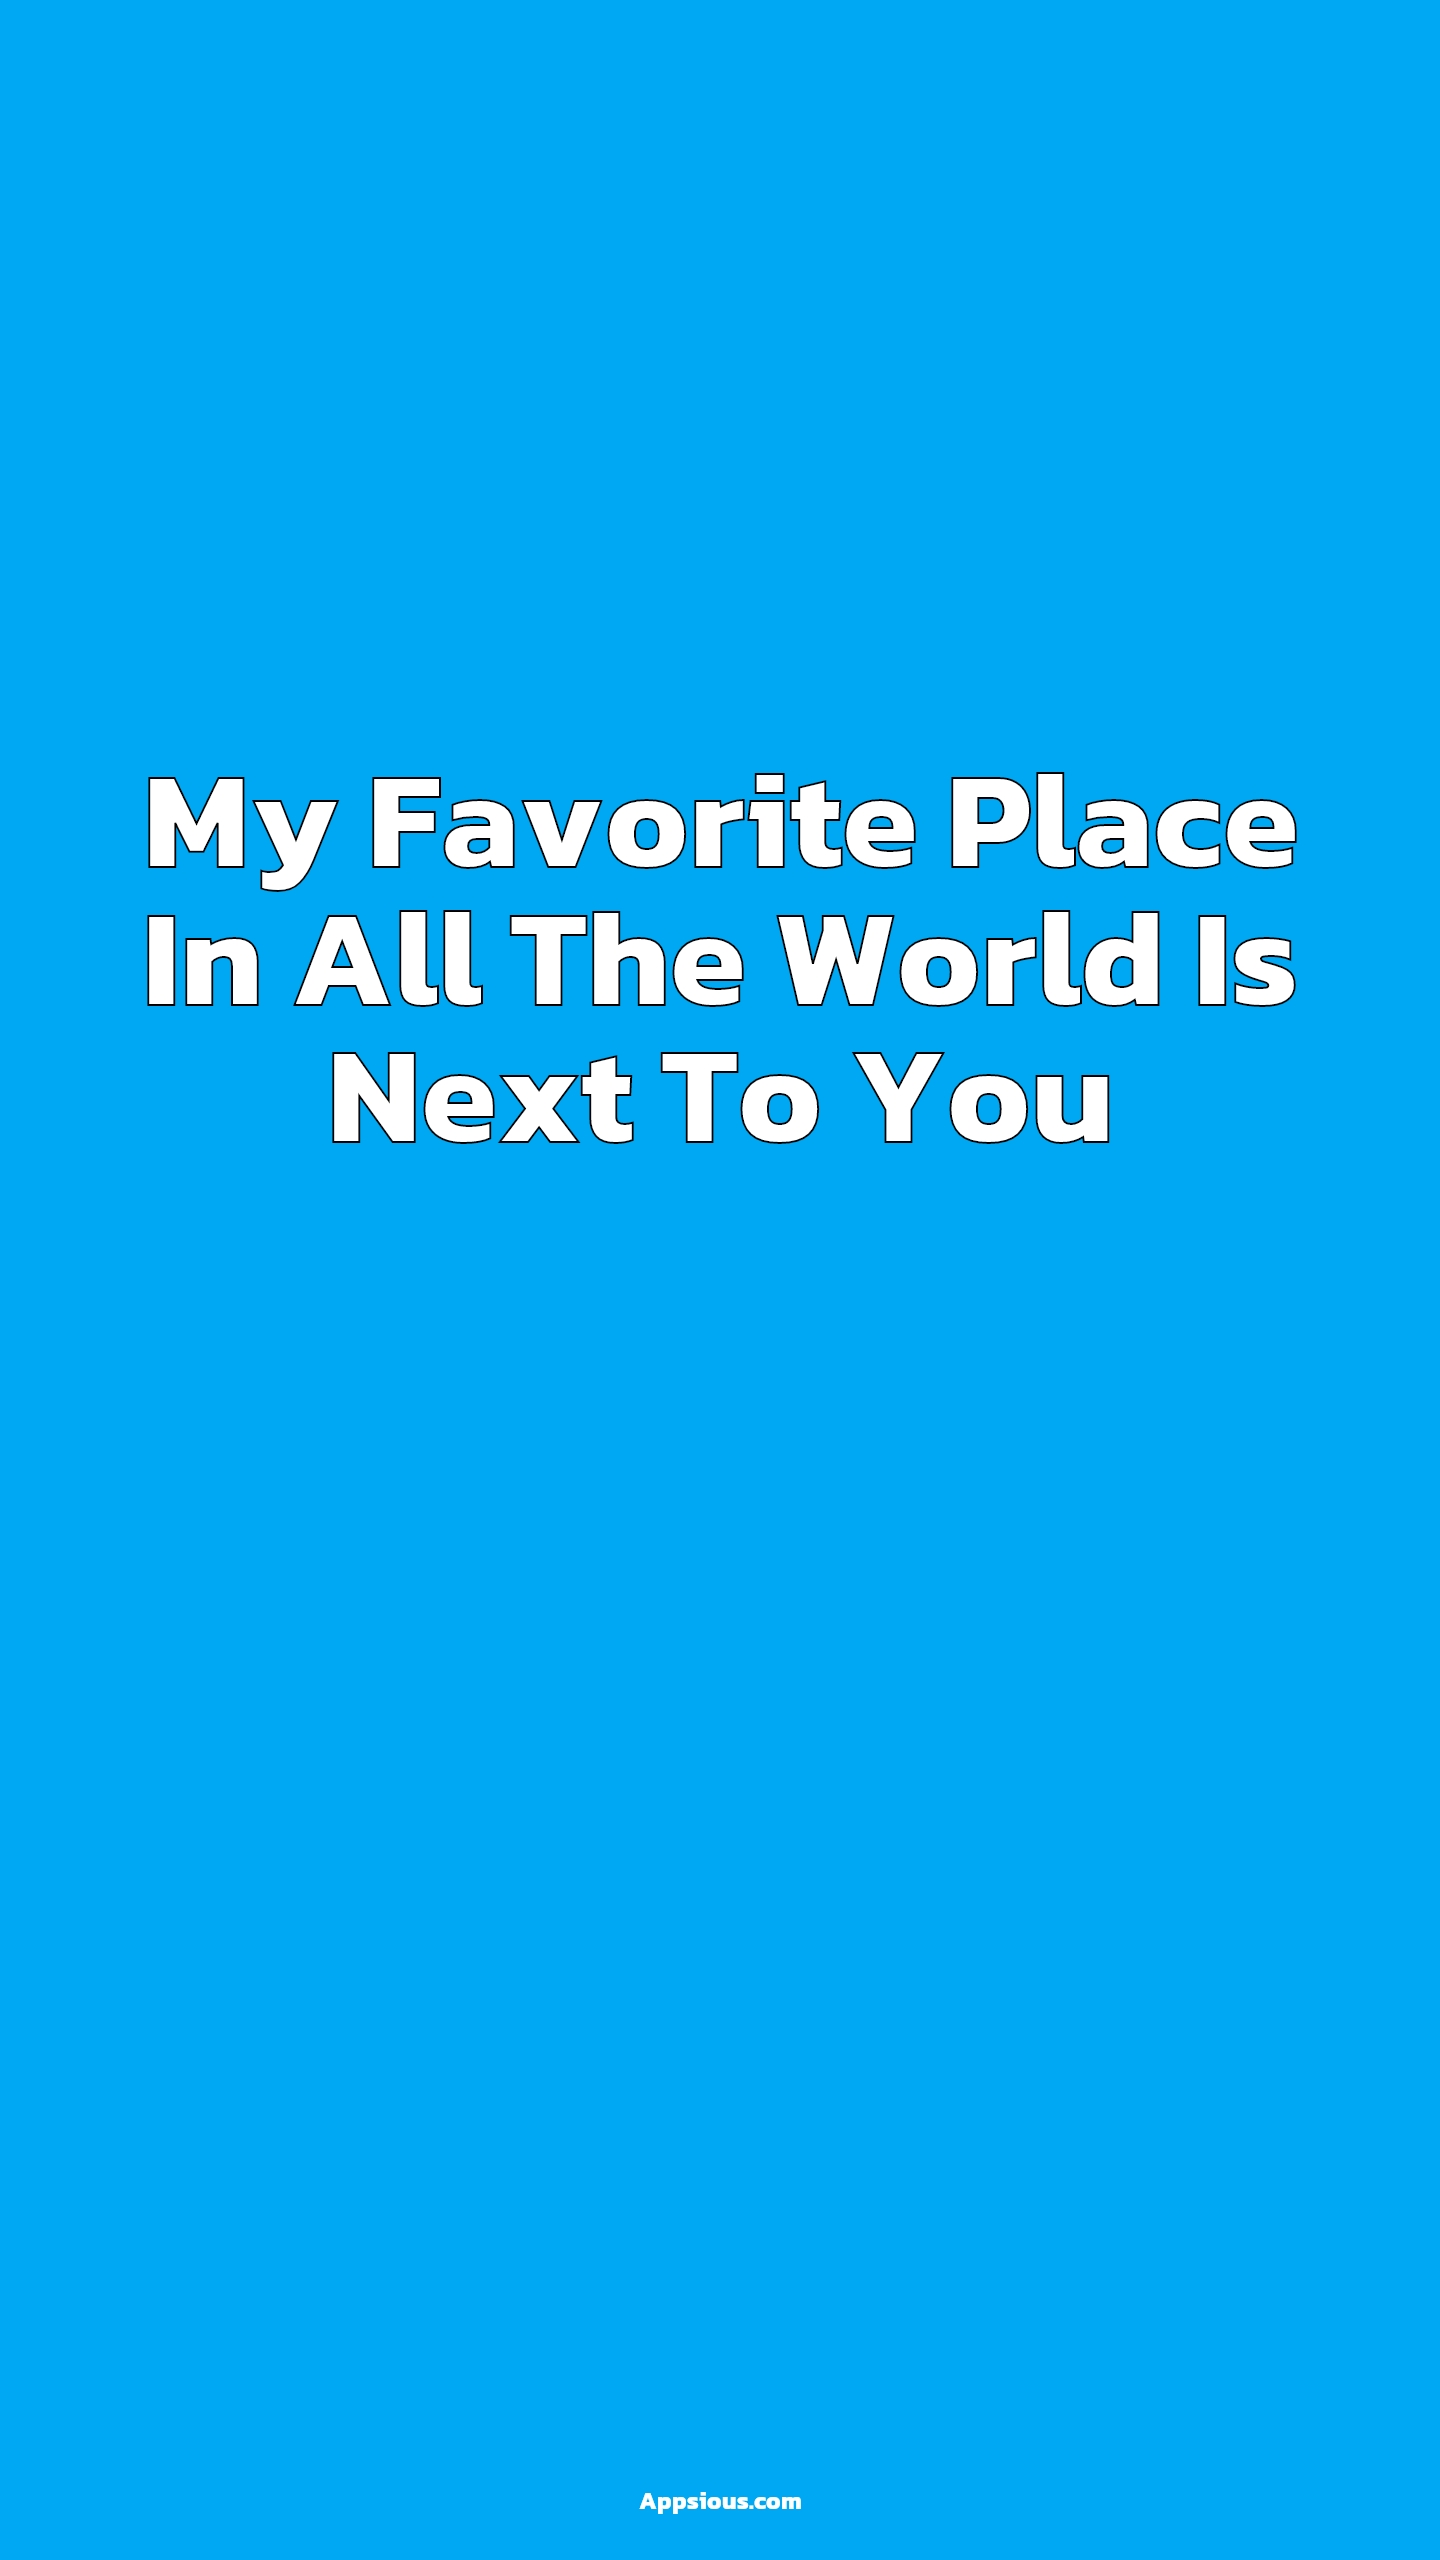 My Favorite Place In All The World Is Next To You